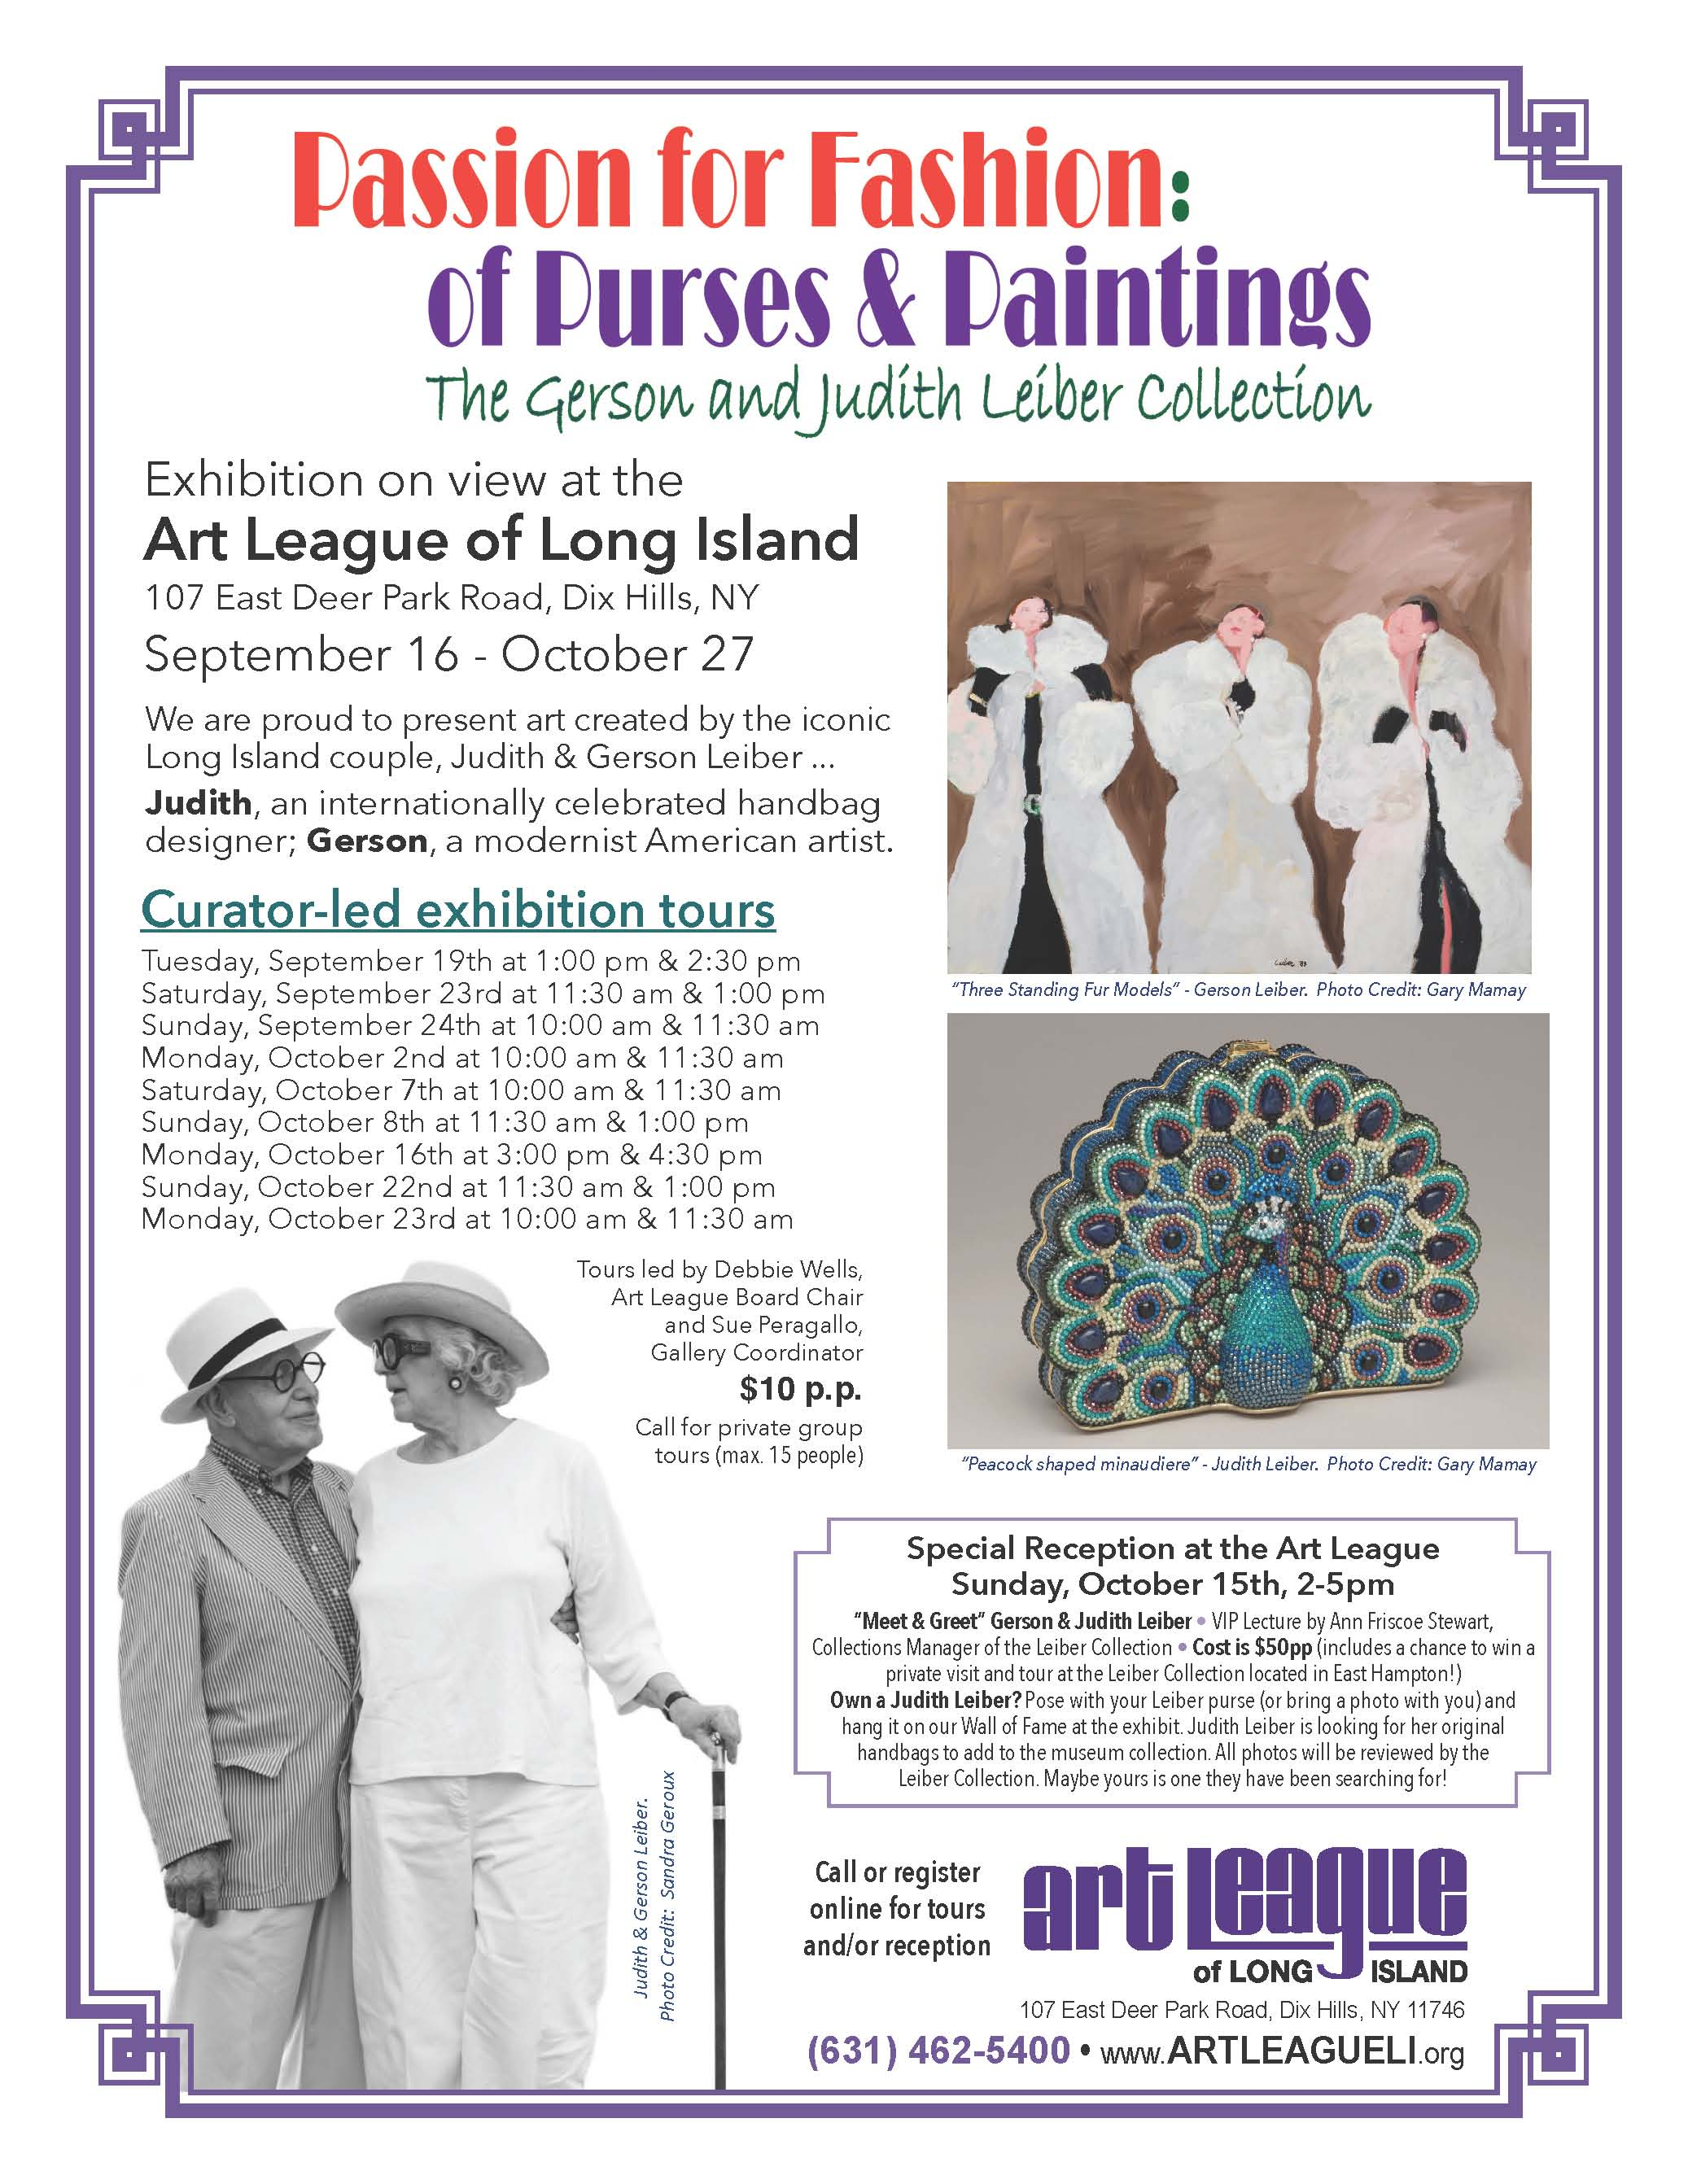 Art League of Long Island: Passion for Fashion Exhibit